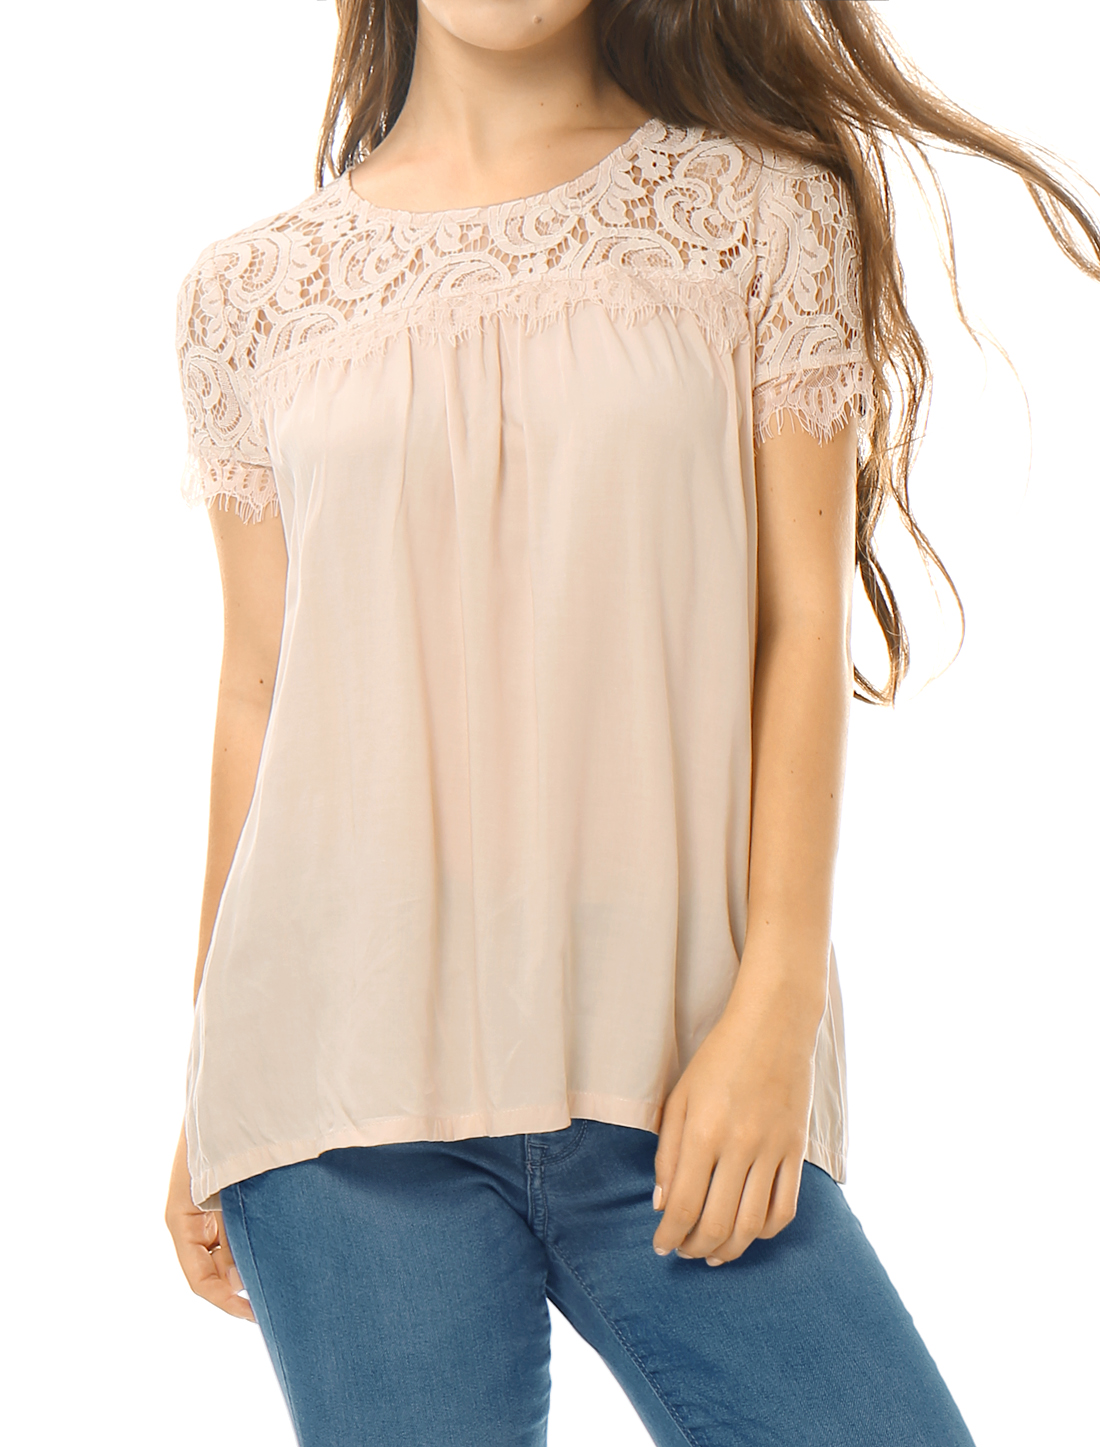 Women Lace Panel Upper Semi Sheer Yoke Short Sleeves Blouse Pink S